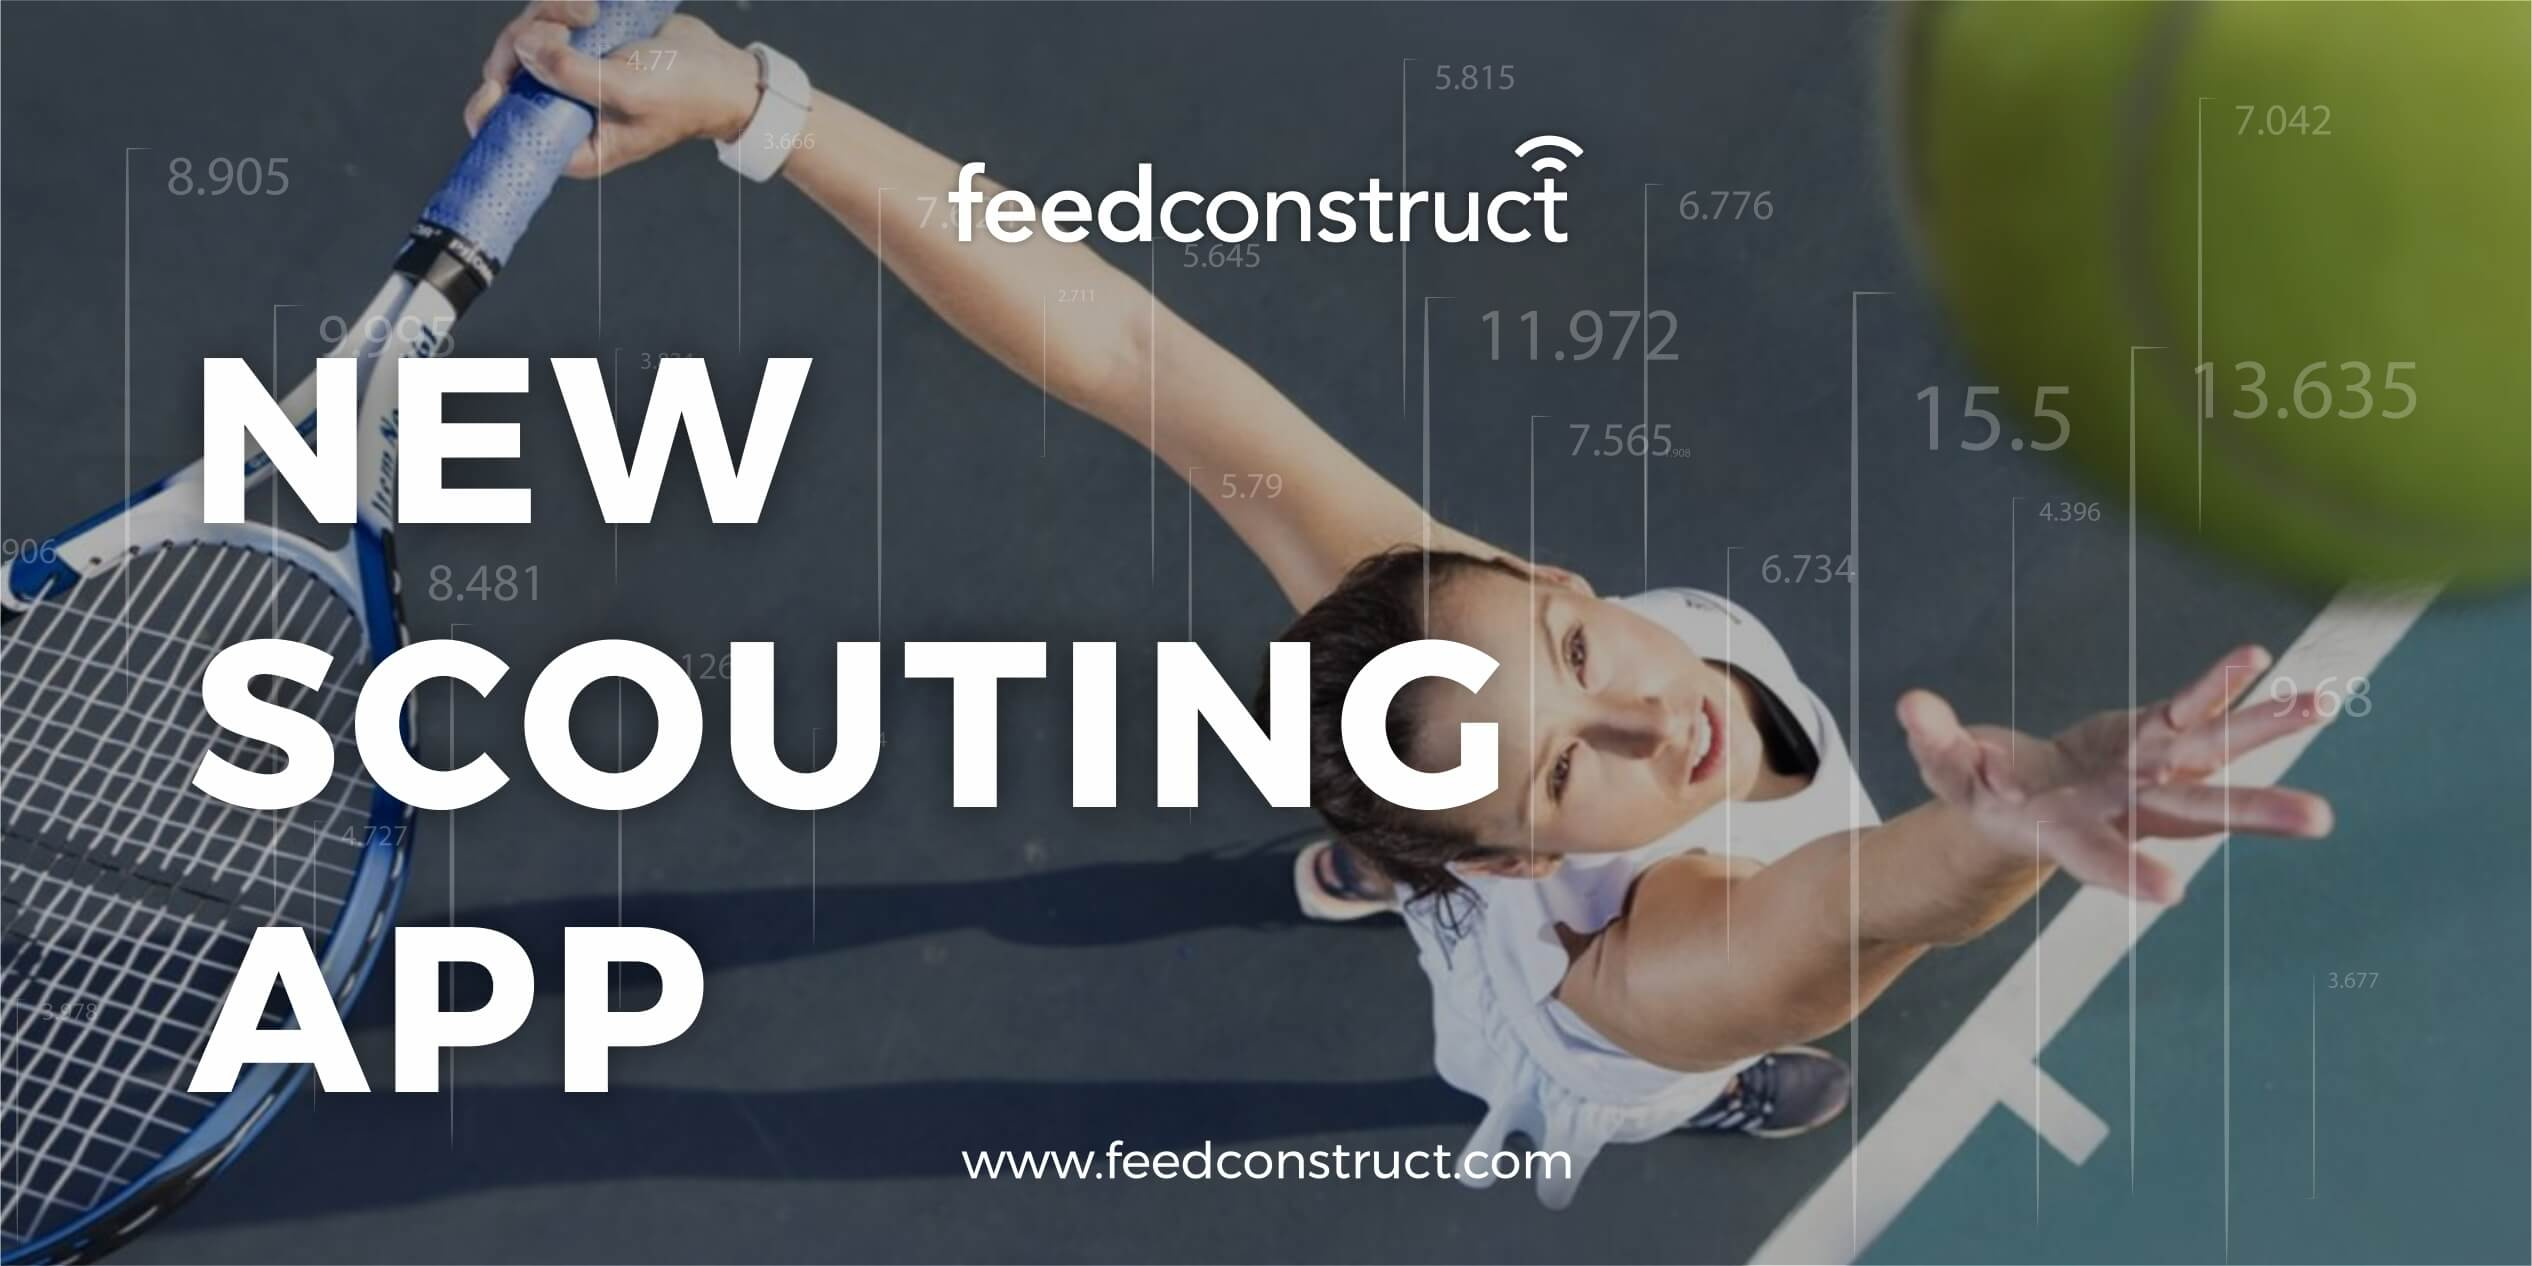 FeedConstruct's new scouting app to cover Tennis